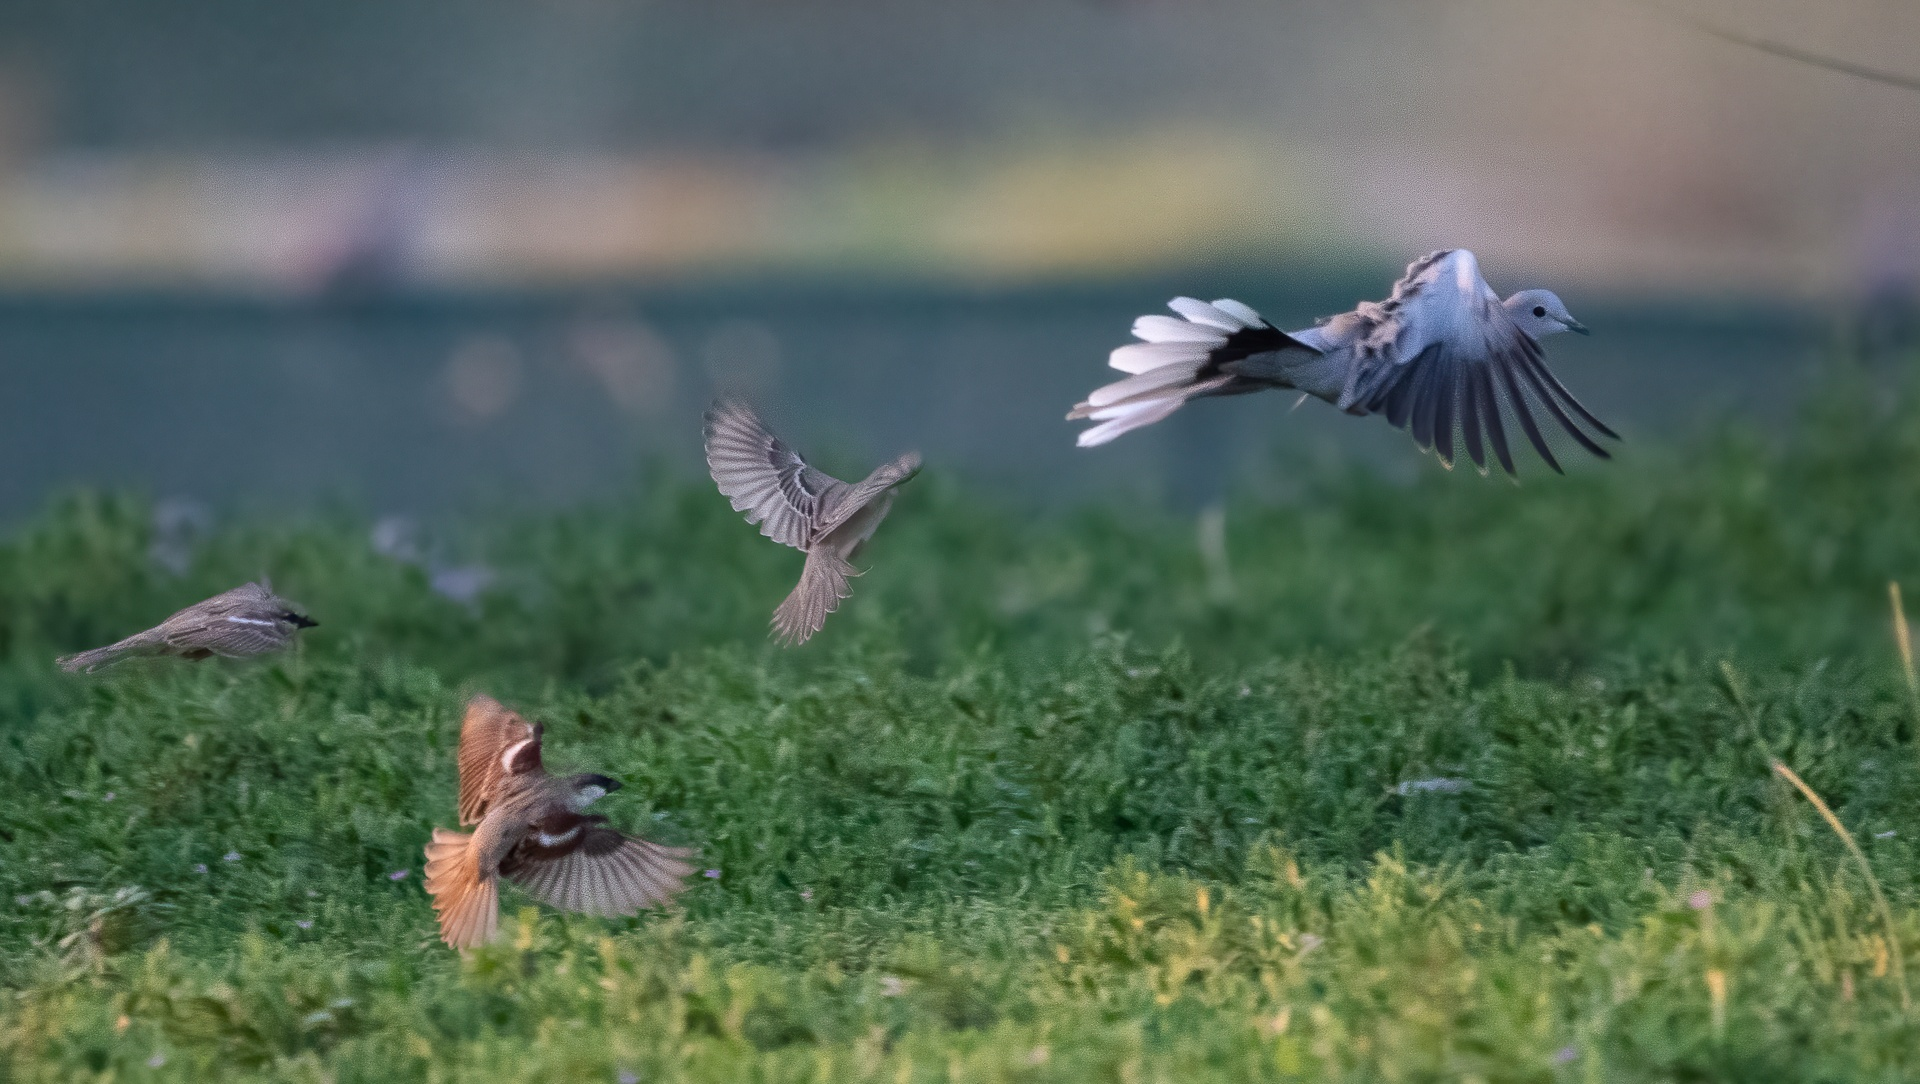 Birds playing chase